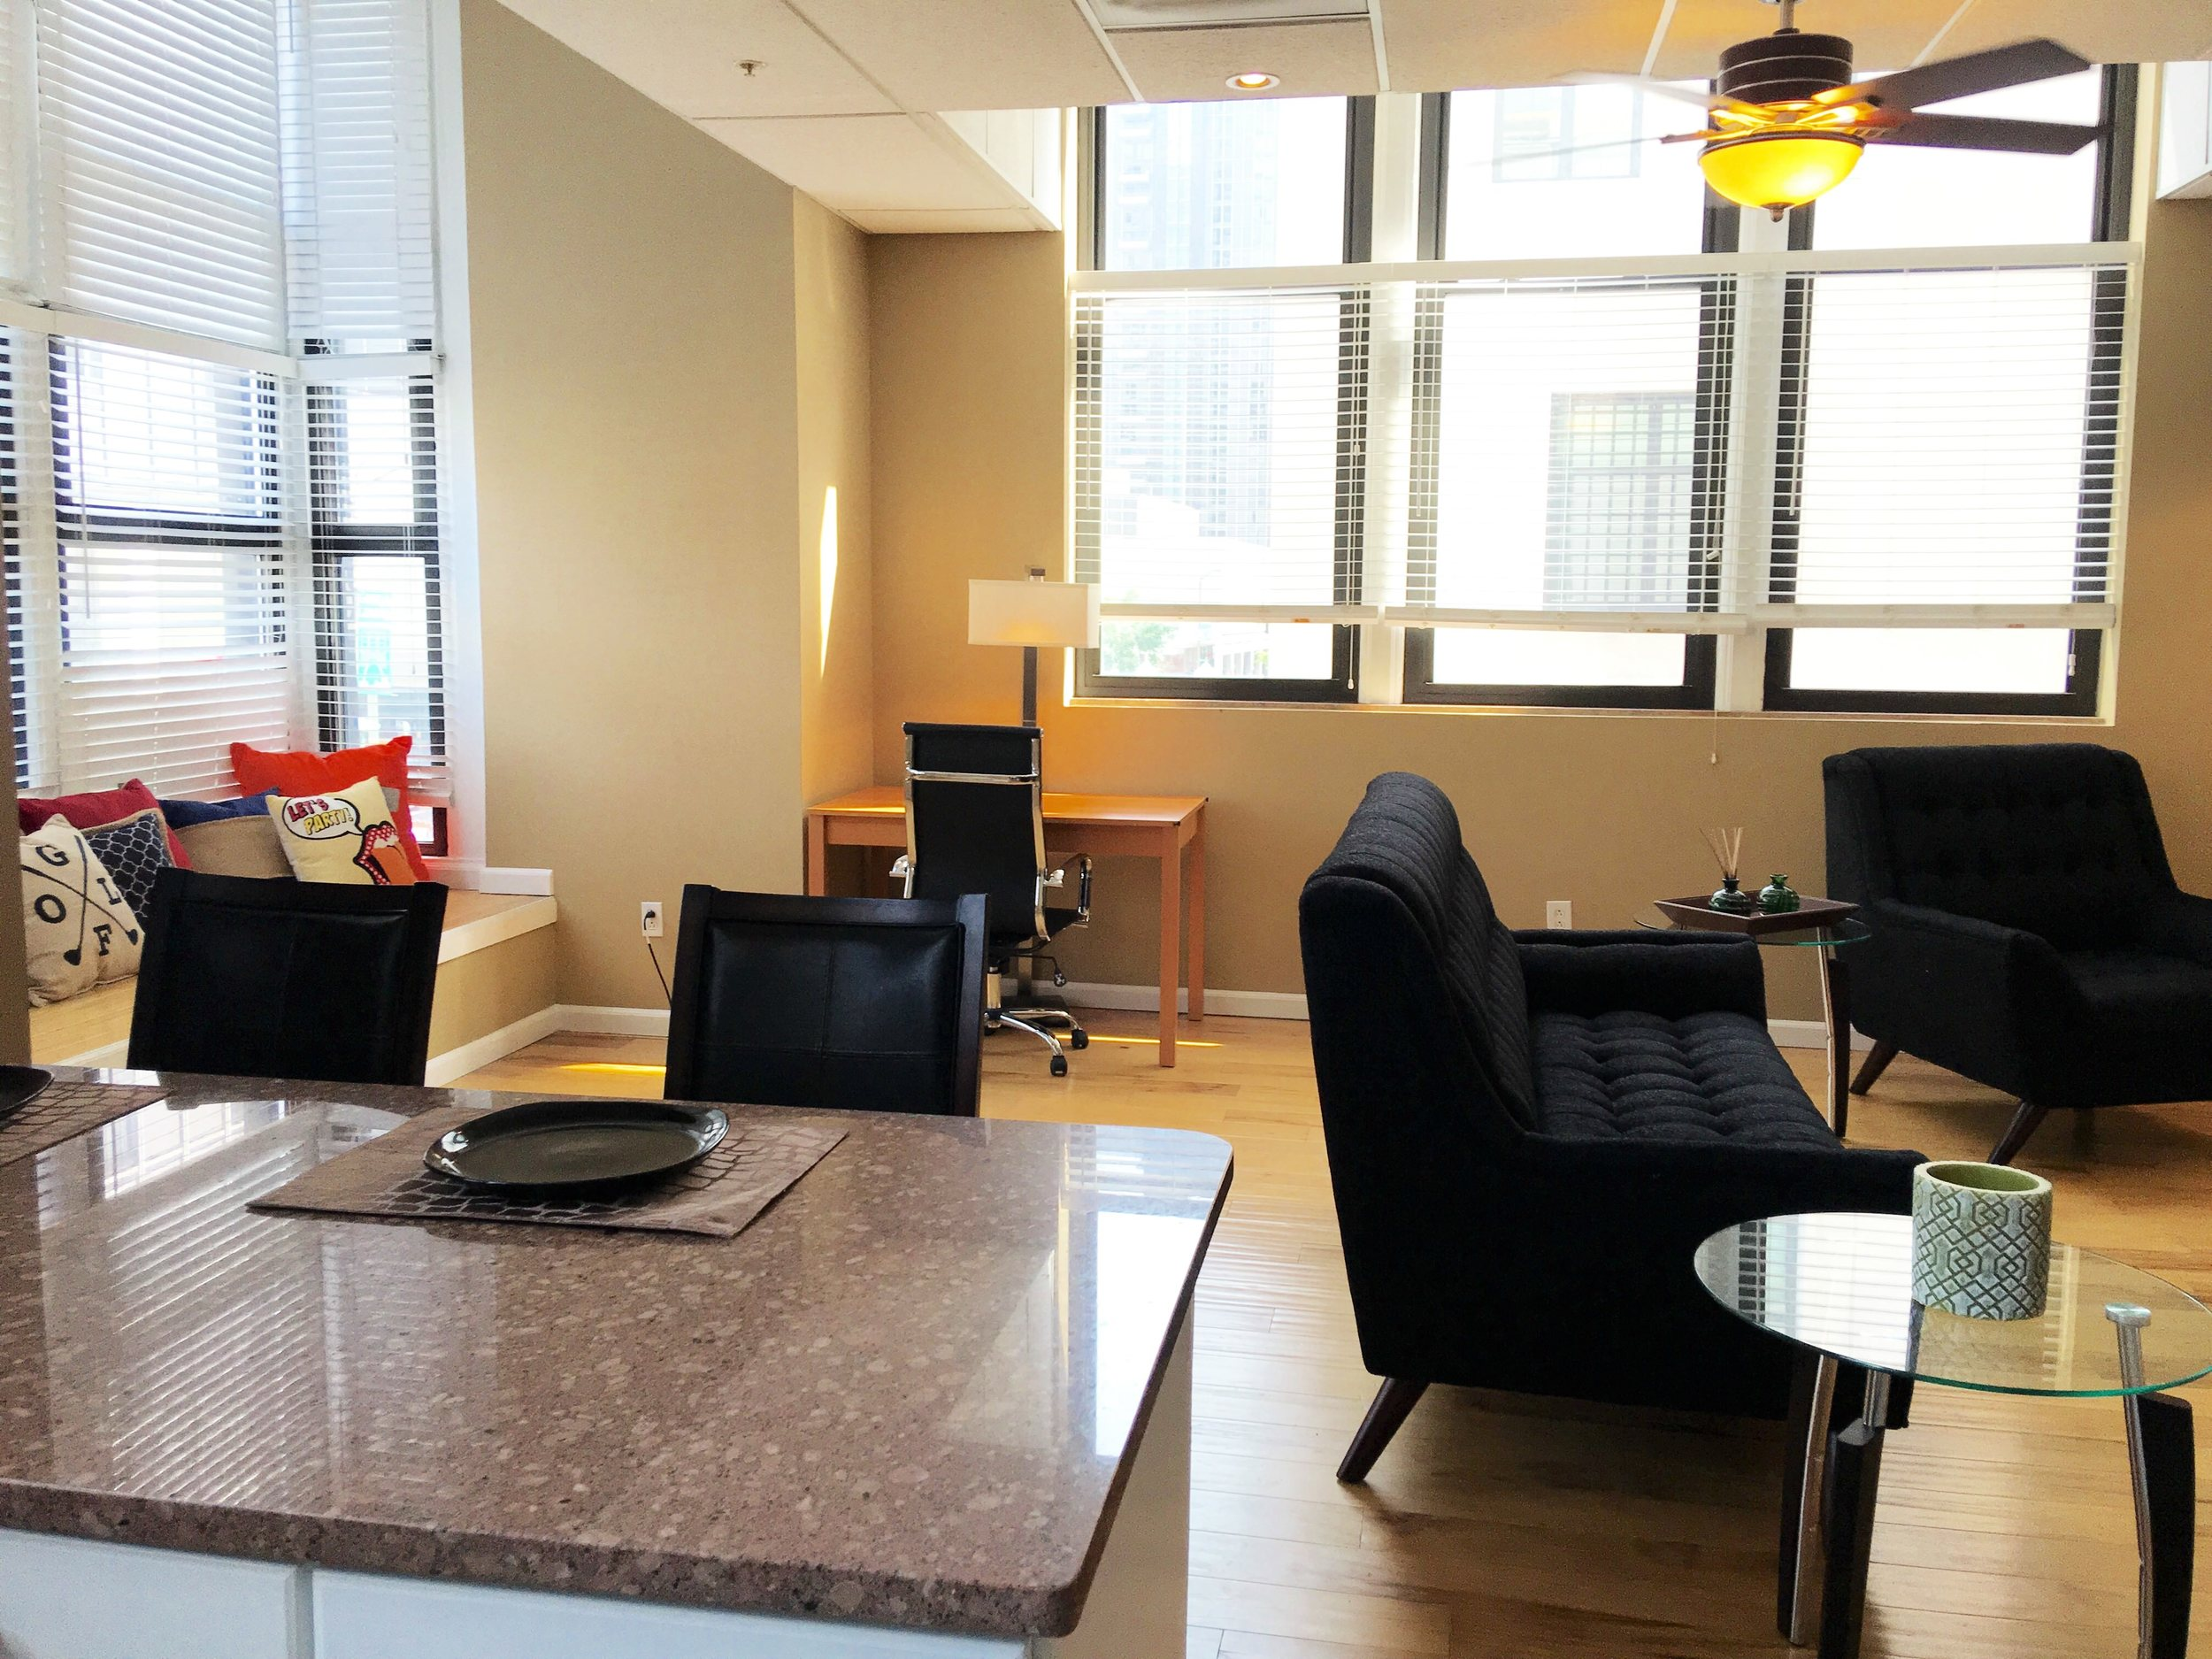 Gallery 400 Downtown St. Louis apartments for rent